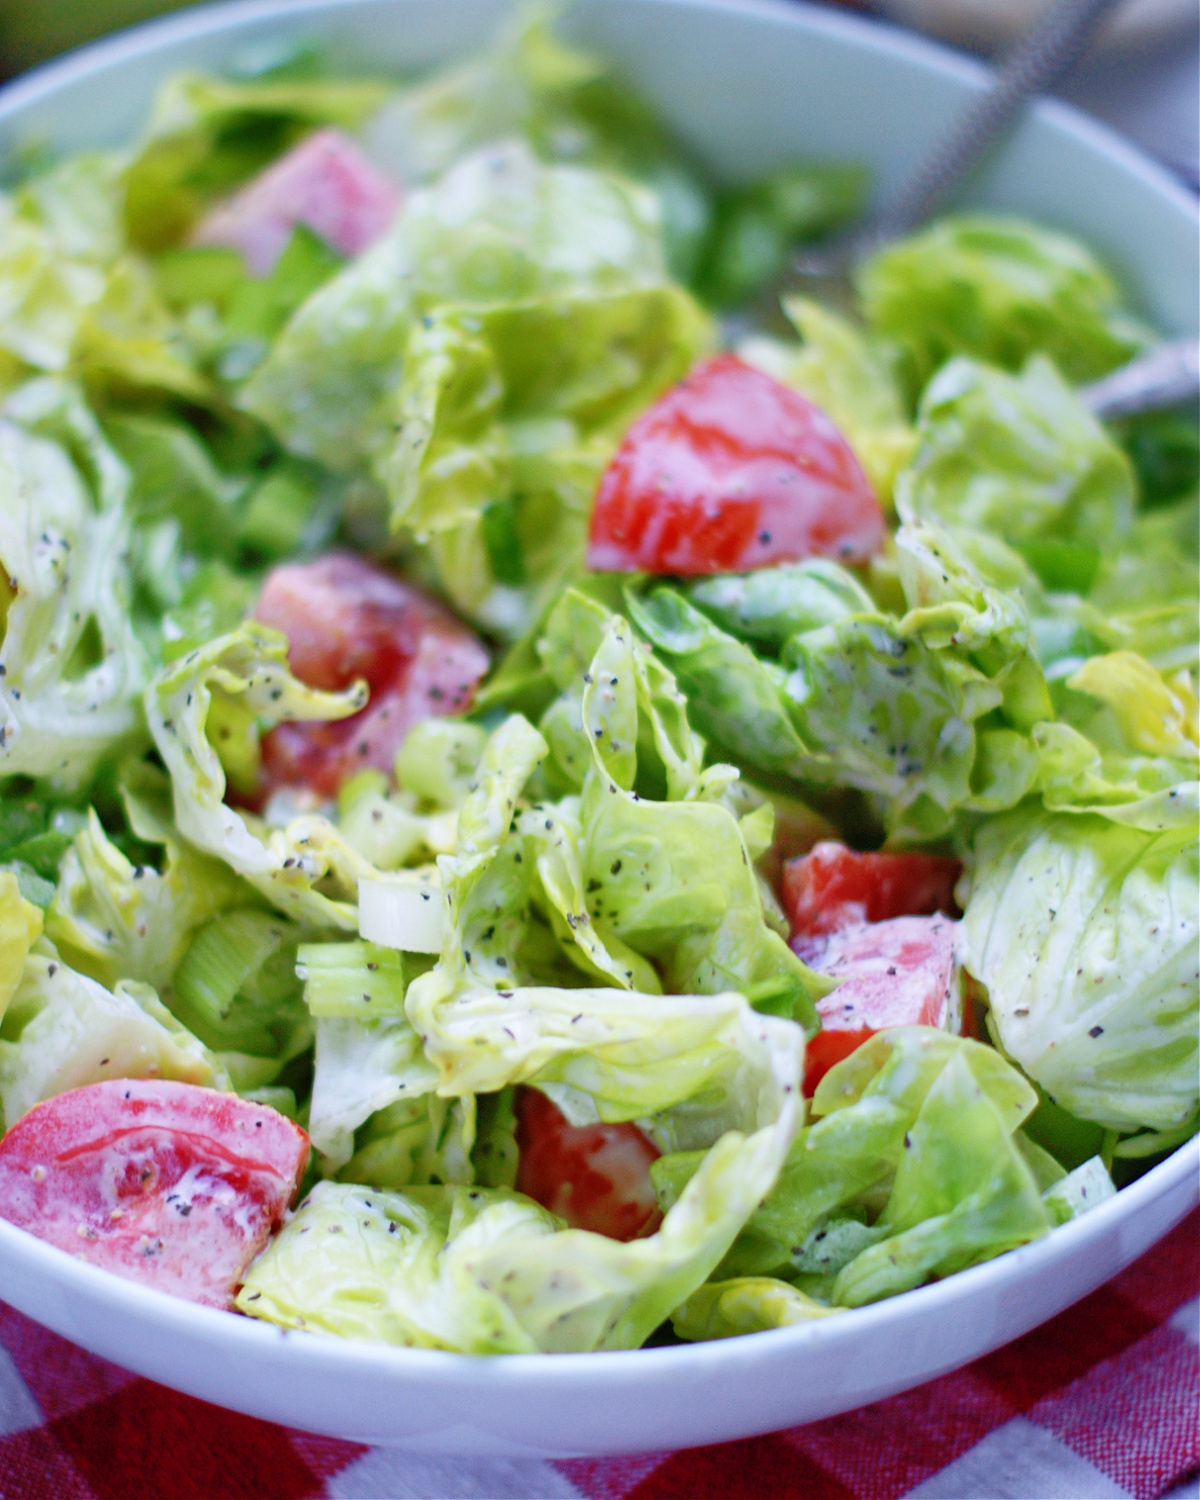 up close of green salad with creamy mayo dressing to show ingredients and texture